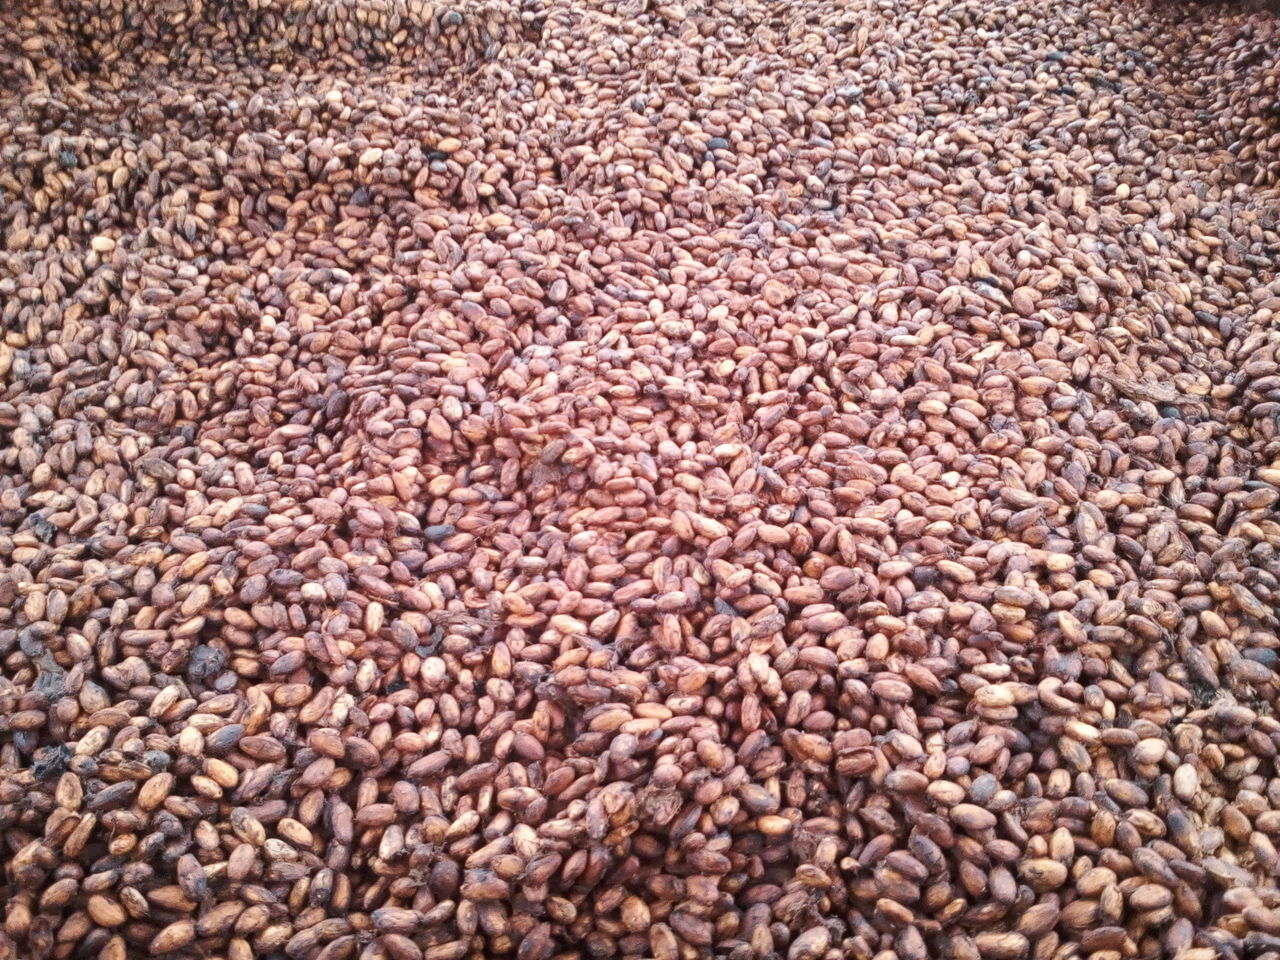 cocoa brazil Fruit Bitter Tropical Agriculture Agro Cocoa Chocolate Plant Tree Export Buy Sell Monay Nature